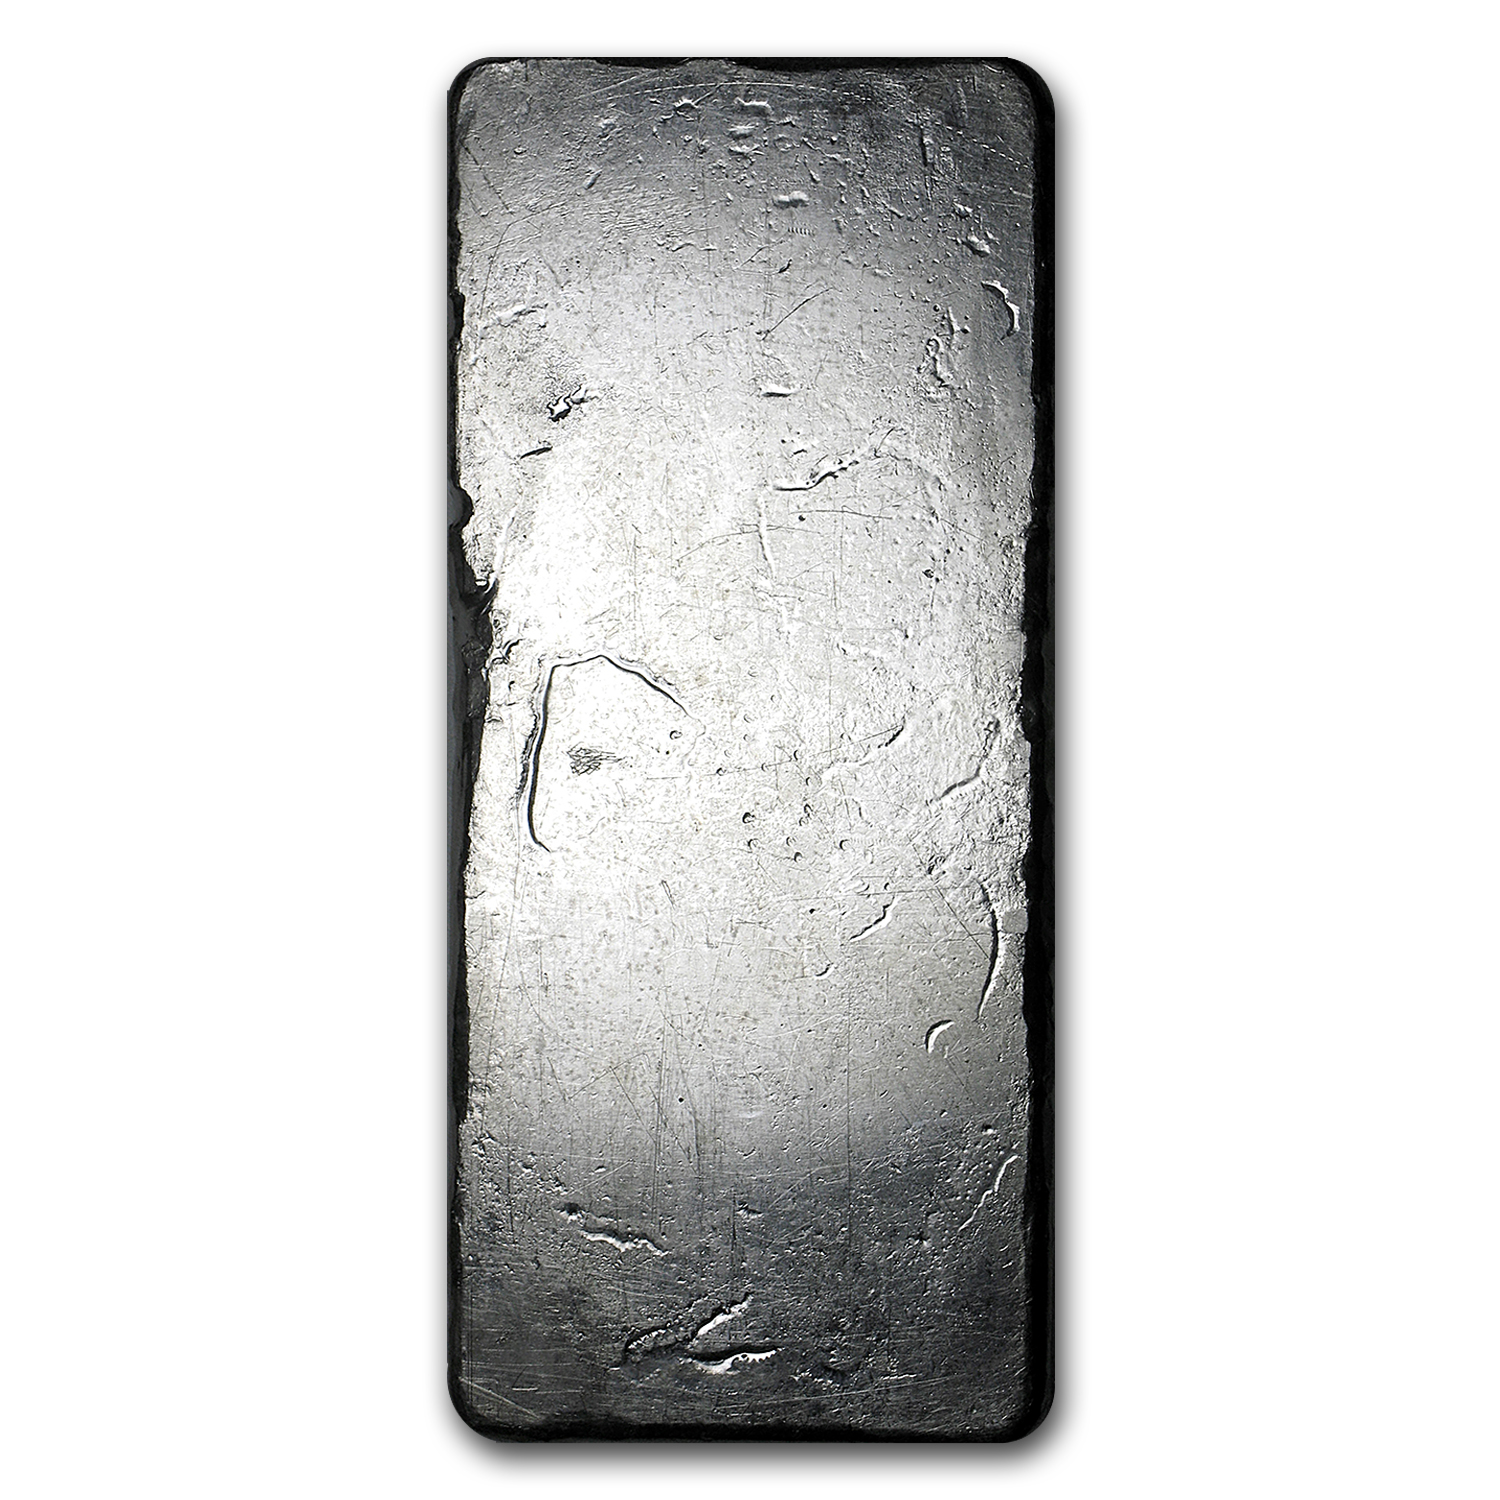 1 Kilo Silver Bar - Swiss Bank Corp.